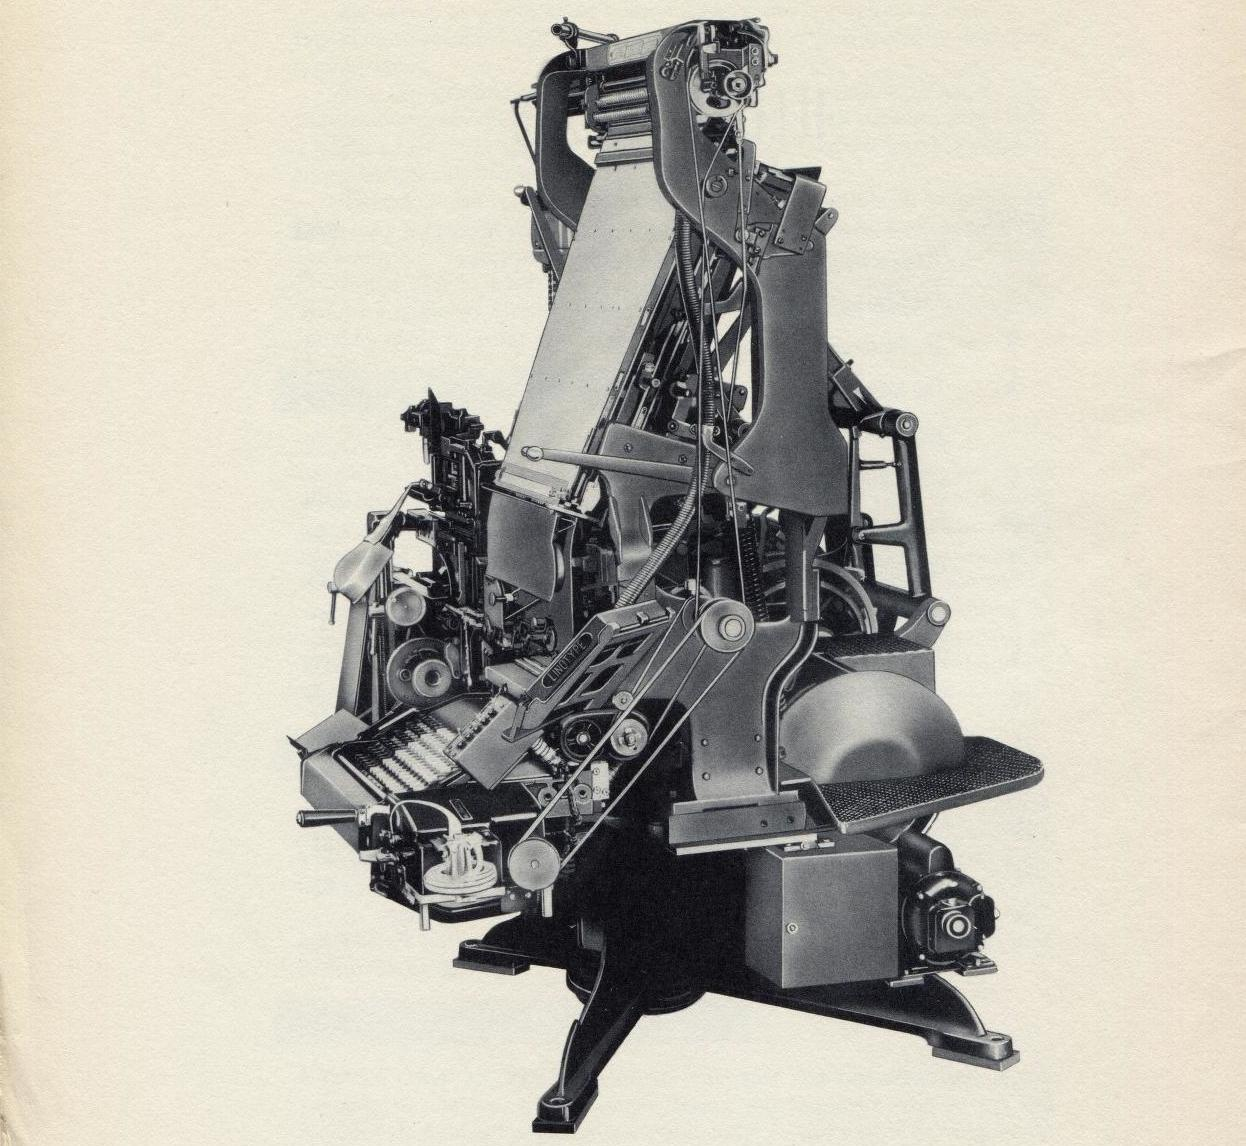 linotype-handbook-for-teletypesetter-operation-1951-hms-0600rgbjpg_0007